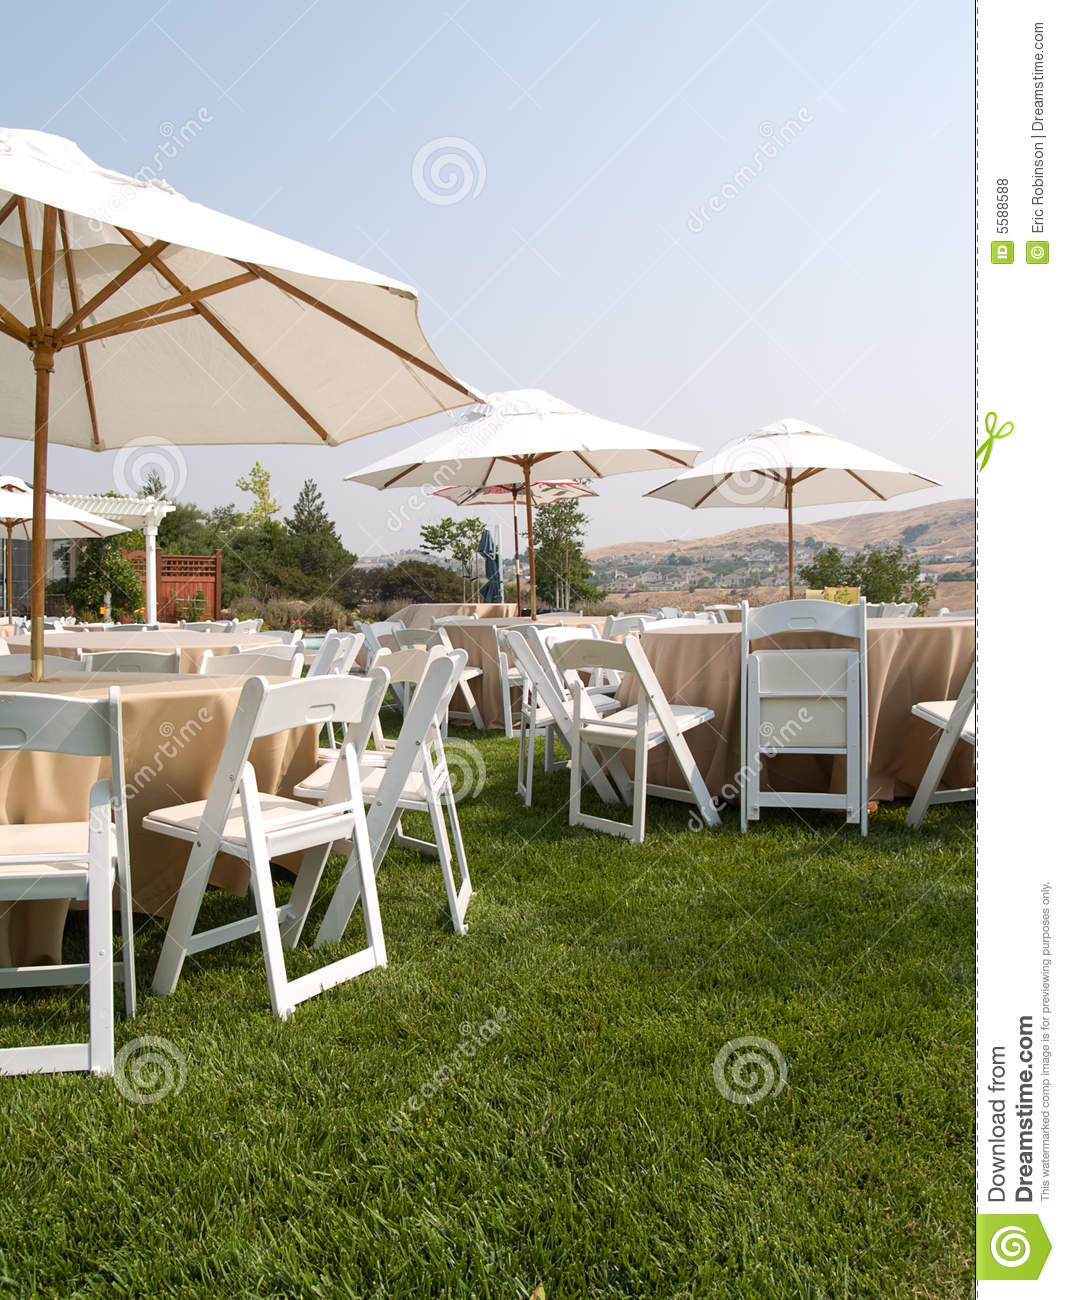 outdoor dream chair ergonomic arm chairs party stock photo image of wedding outside